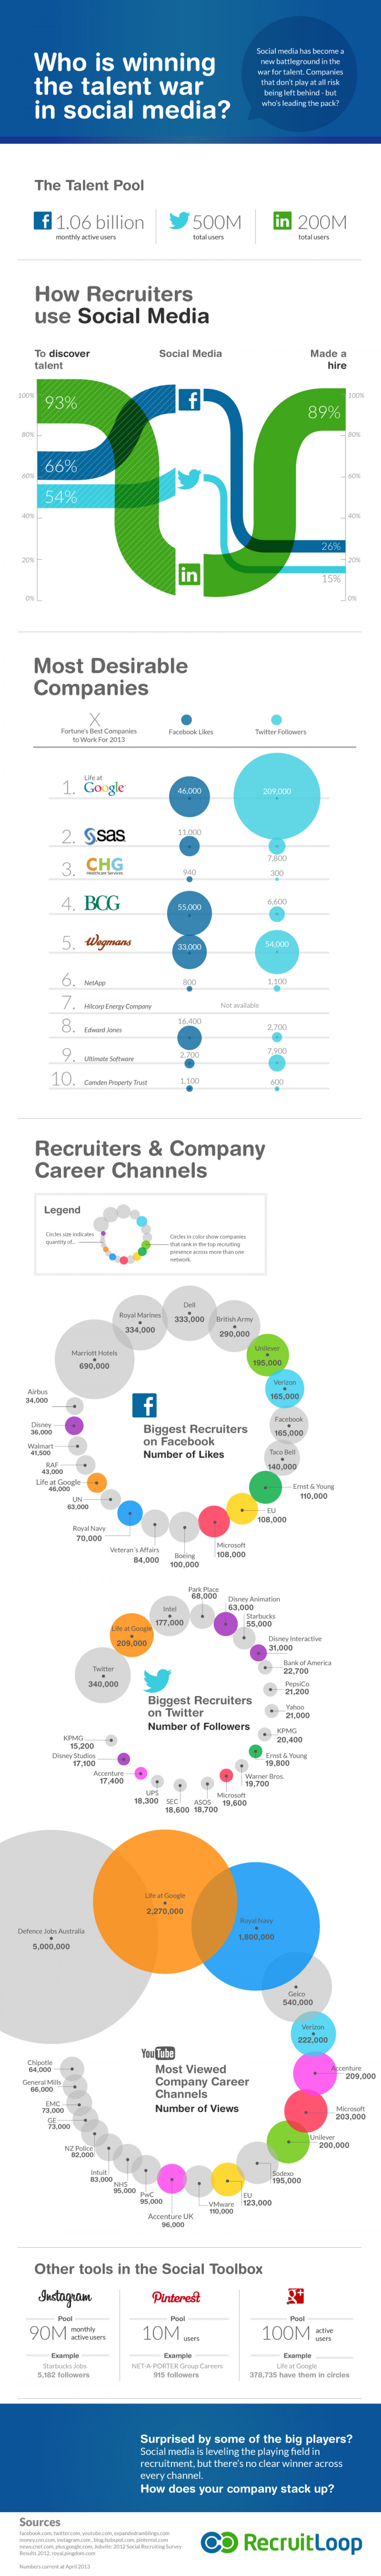 Who is winning the talent war in social media? Infographic